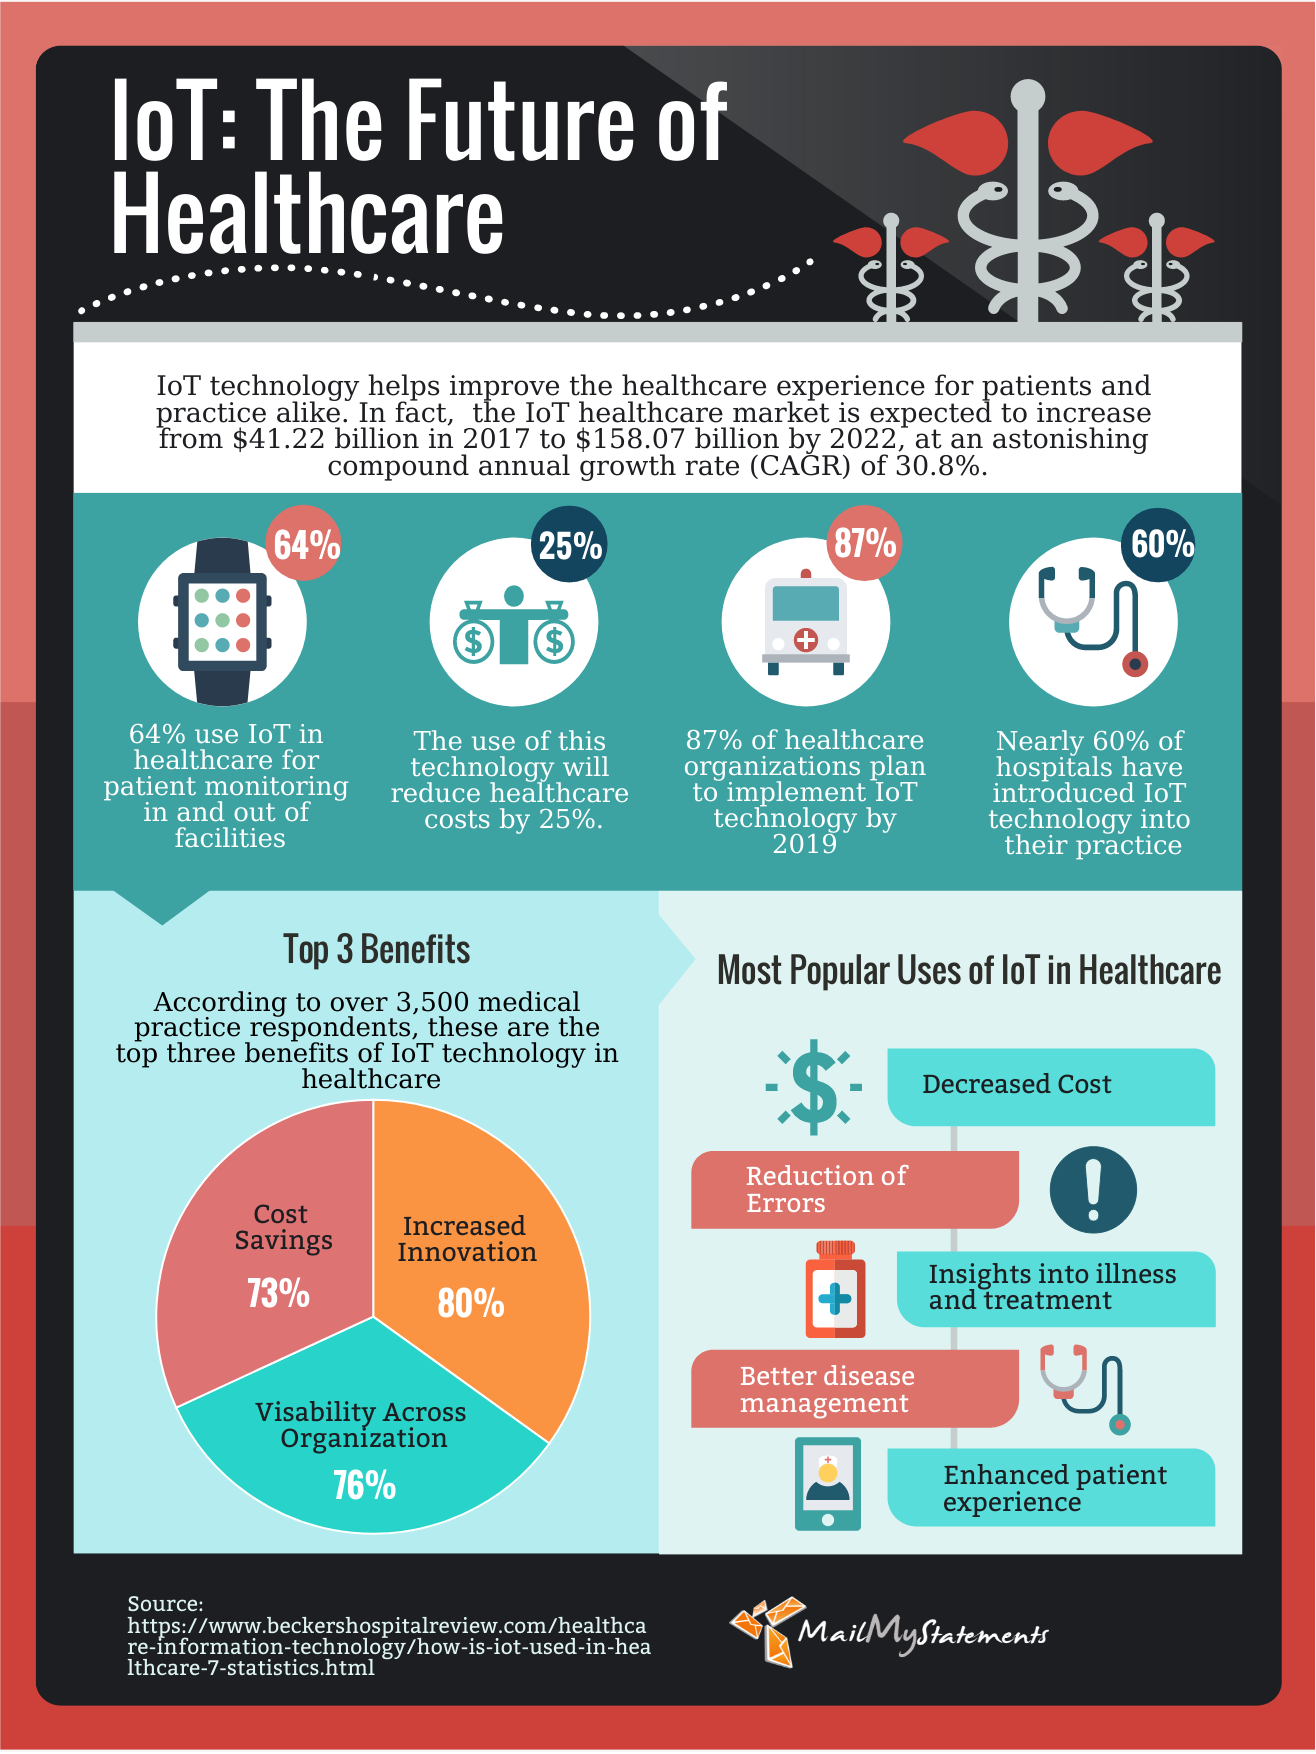 5 benefits of IoT in healthcare